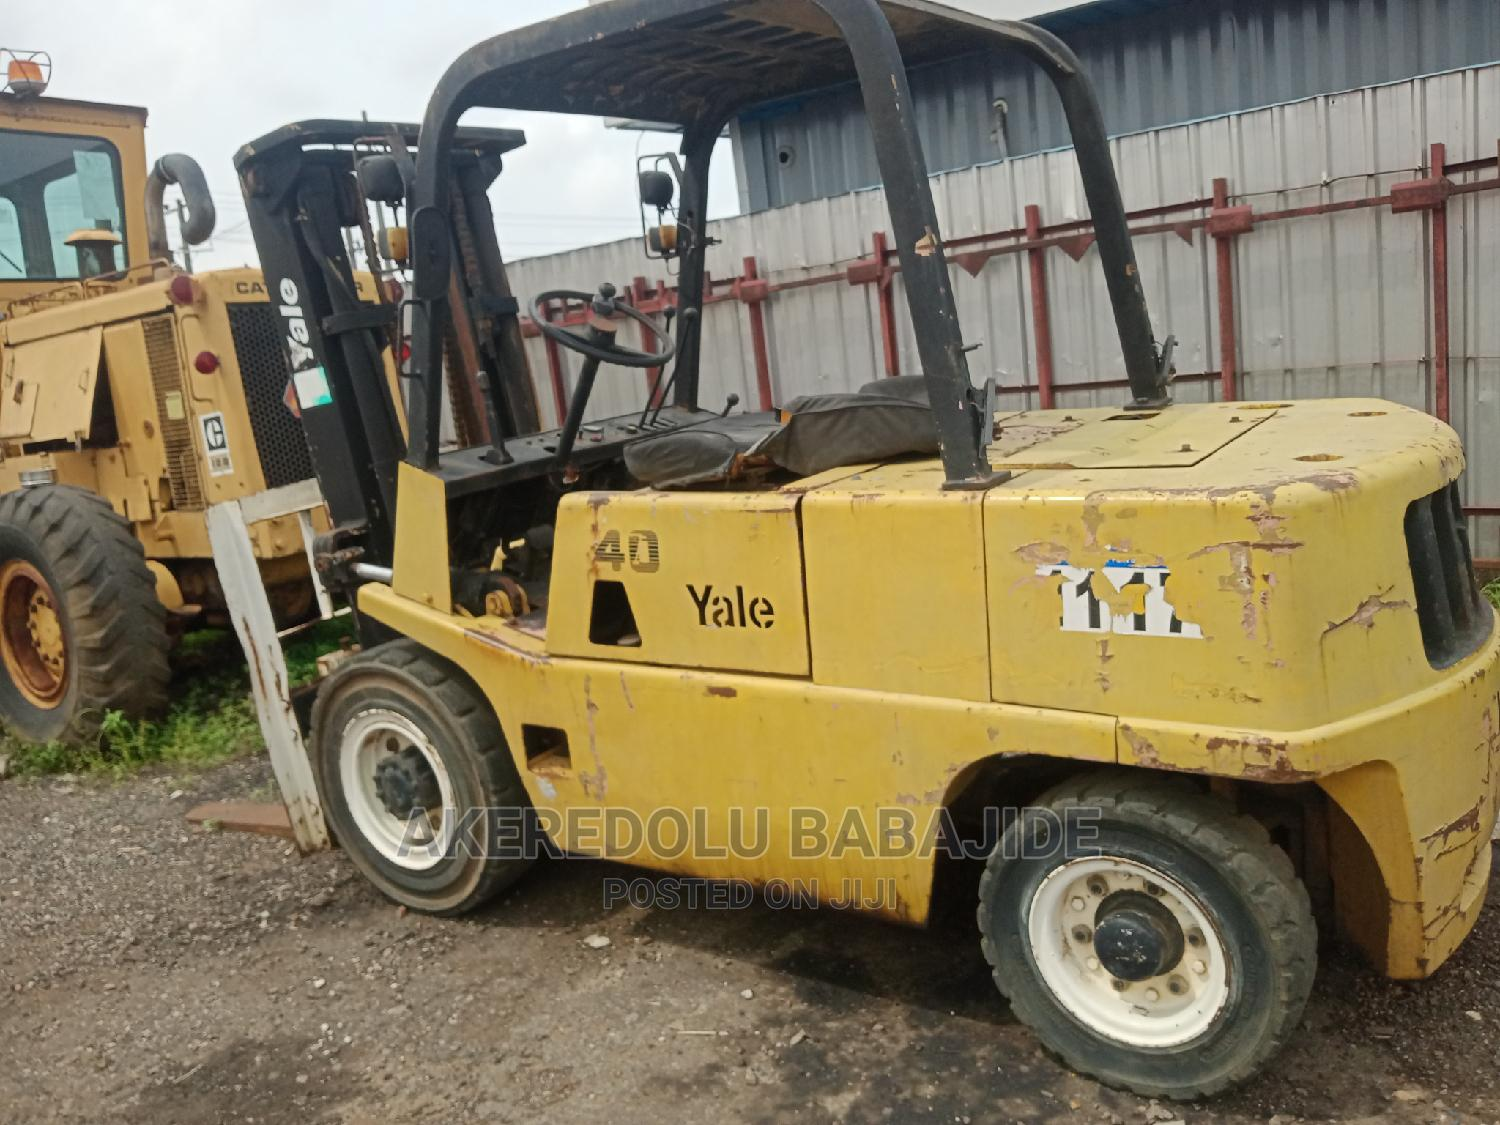 This Forklift Is Just Two Good